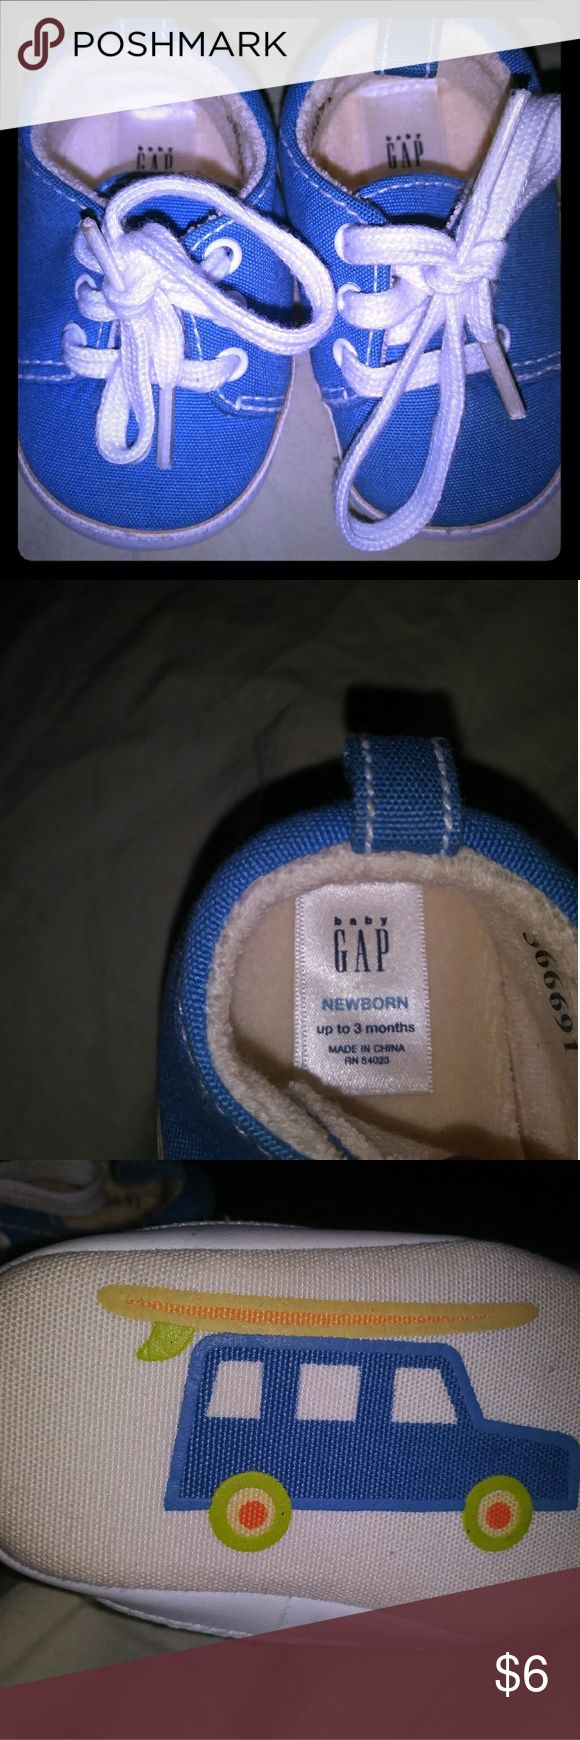 Baby Gap NB shoes Adorable newborn booty style shoes in baby blue. Made by Baby Gap like new GAP Shoes Baby & Walker